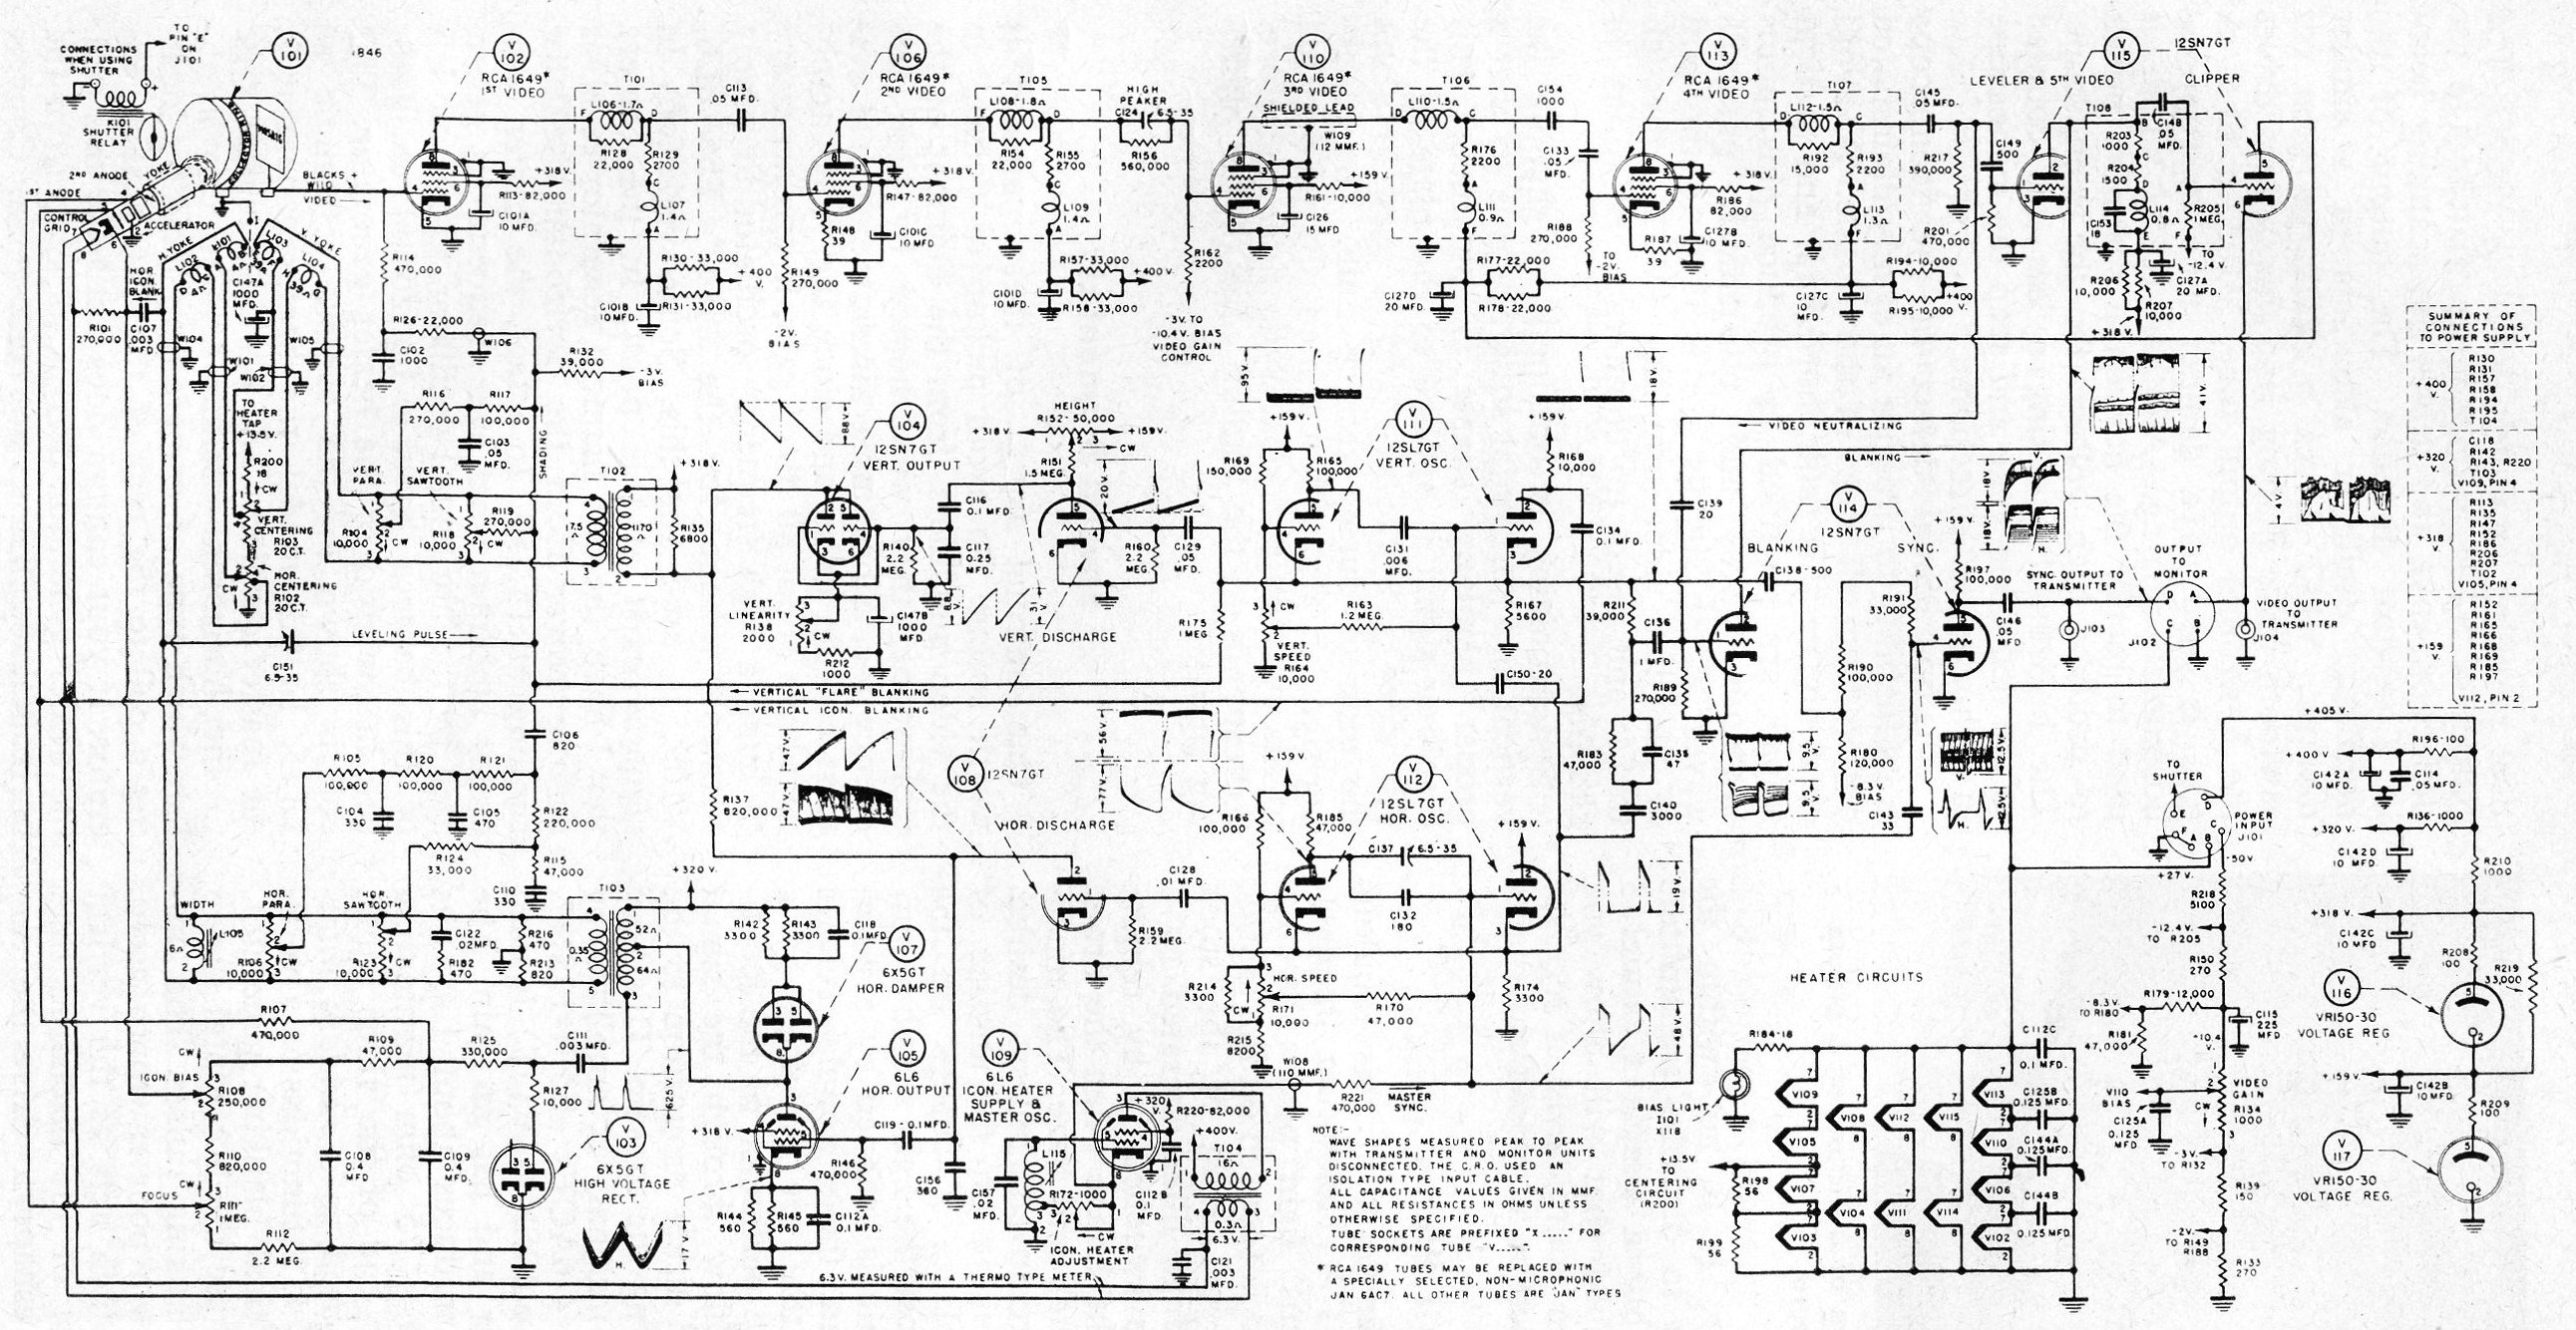 digital camera circuit diagram the wiring diagram labguy s world rca crv 59aae iconoscope tv camera restoration circuit diagram